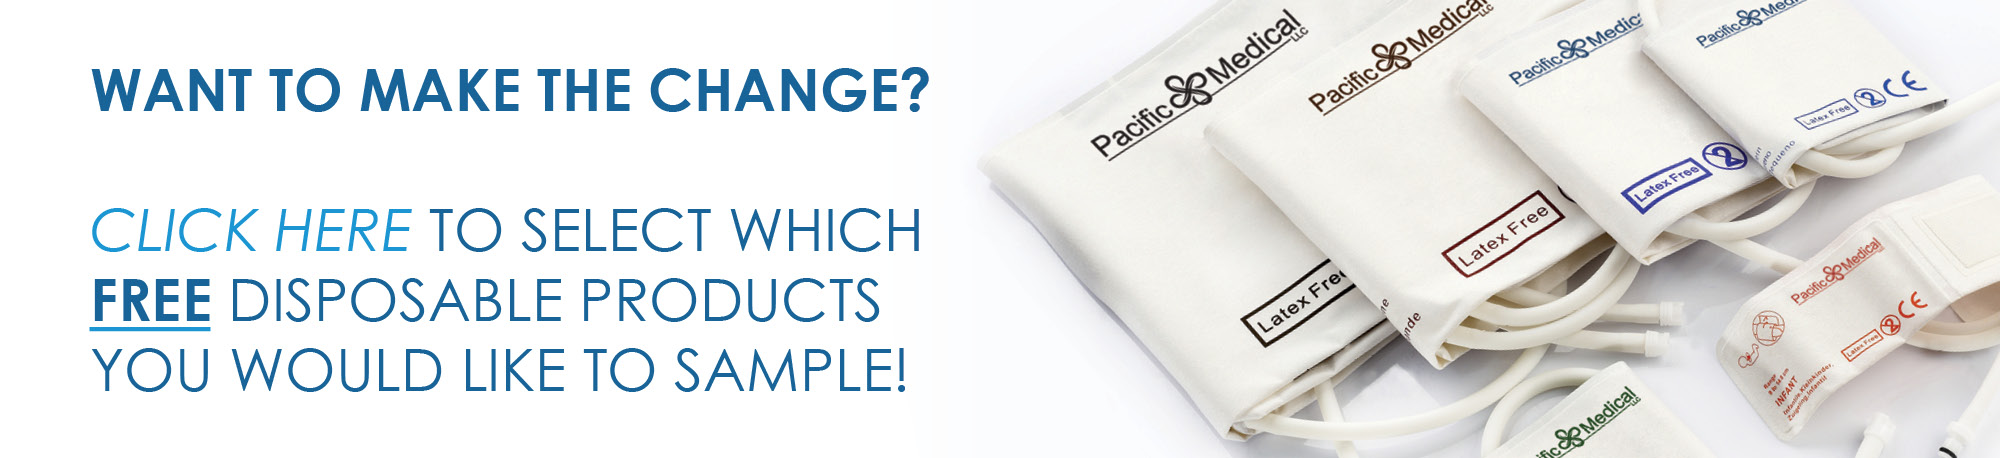 Get A free disposable sample from Pacific Medical Supply